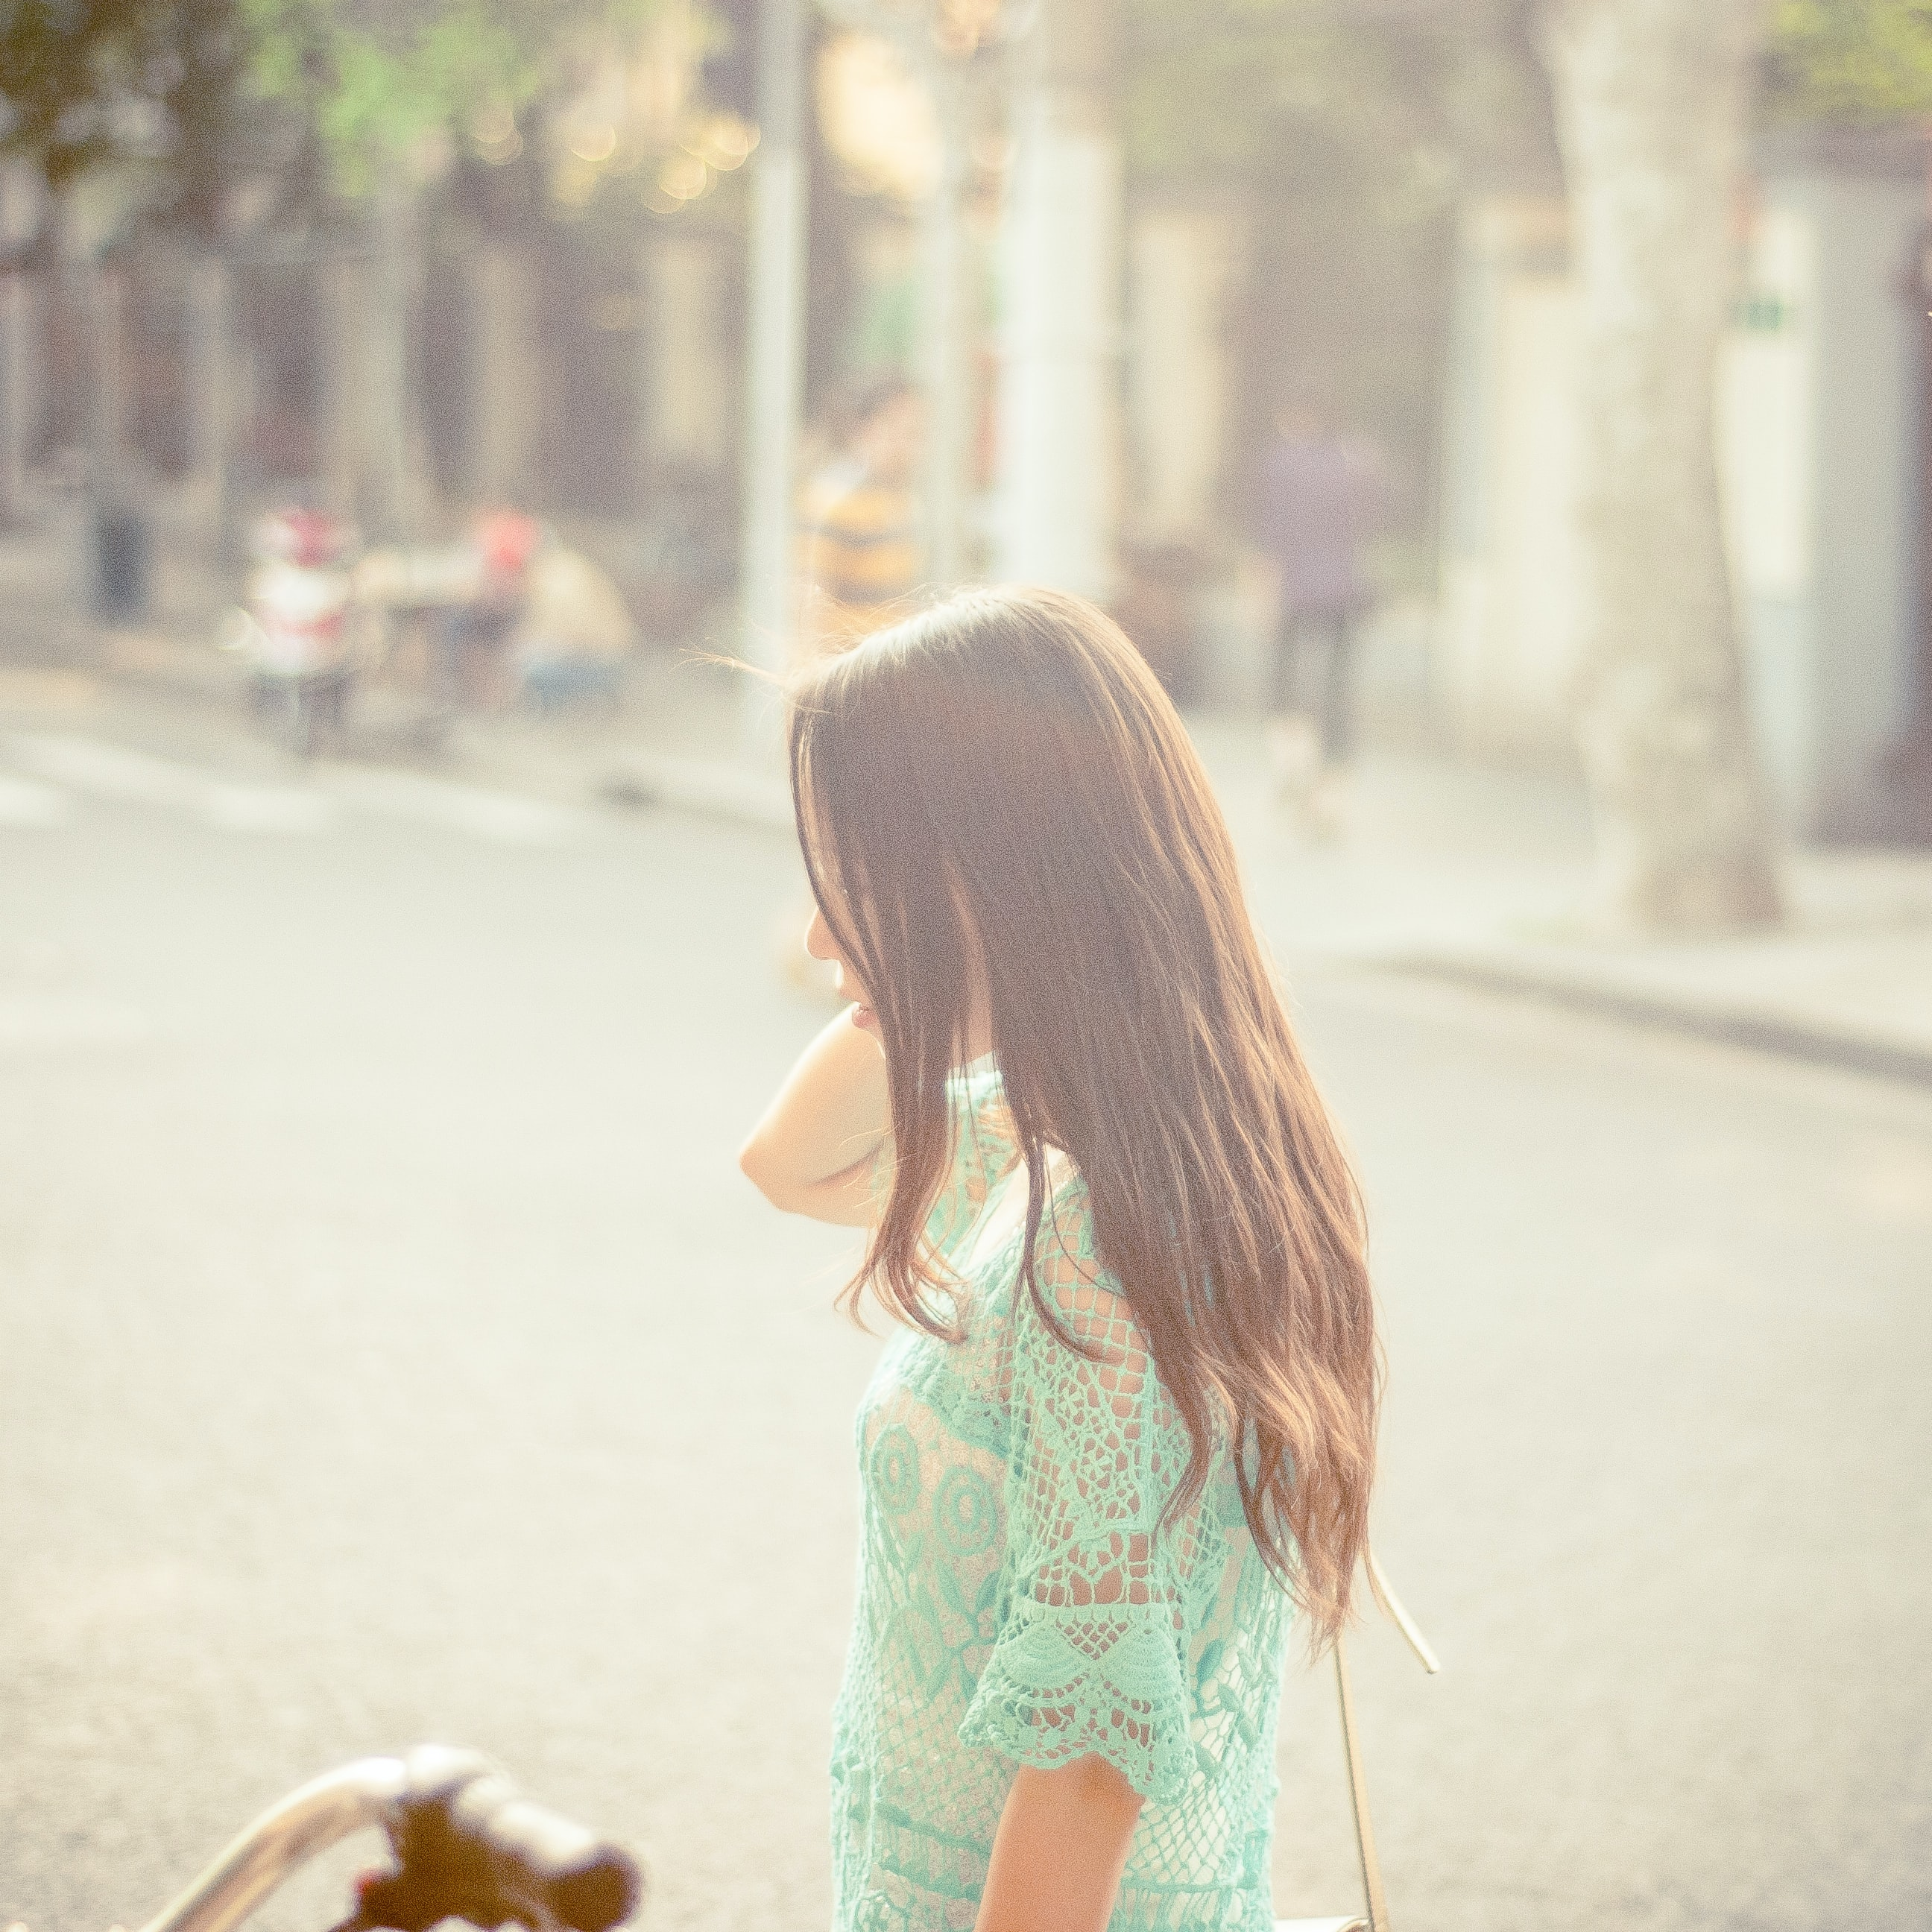 A woman in profile in a turquoise lacy top by a city street in bright sunlight